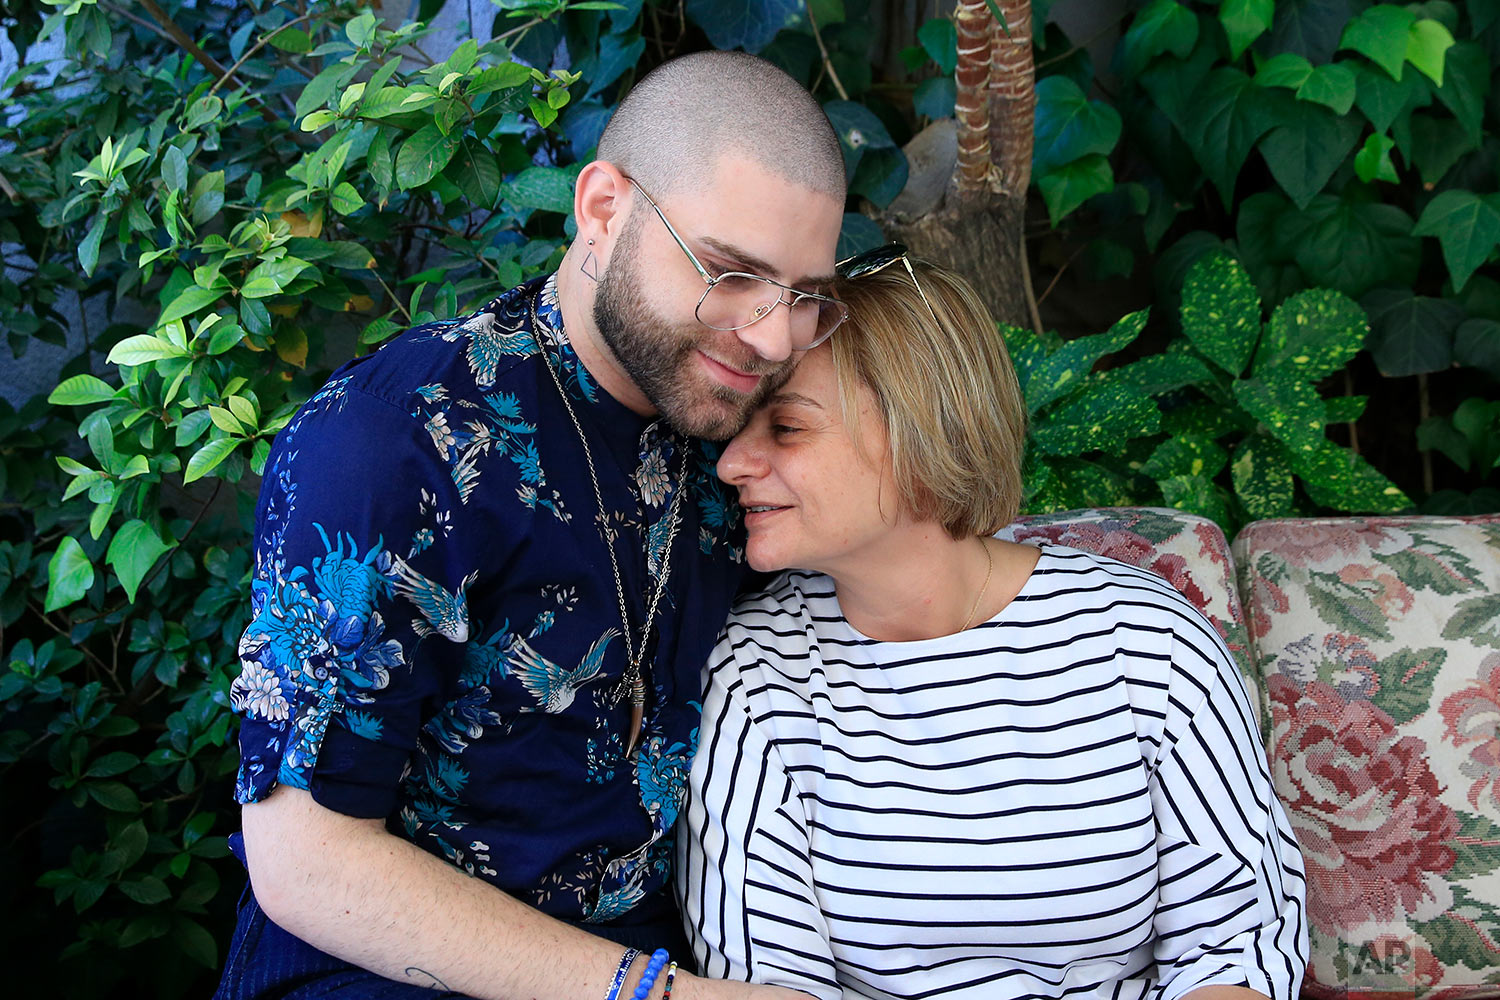 In this picture taken Saturday, May 12, 2018, Elias, 24, who goes by the stage name of Melanie Coxxx hugs his mother Valerie at a restaurant during the launch event of Beirut Pride week in Beirut, Lebanon. (AP Photo/Hassan Ammar)